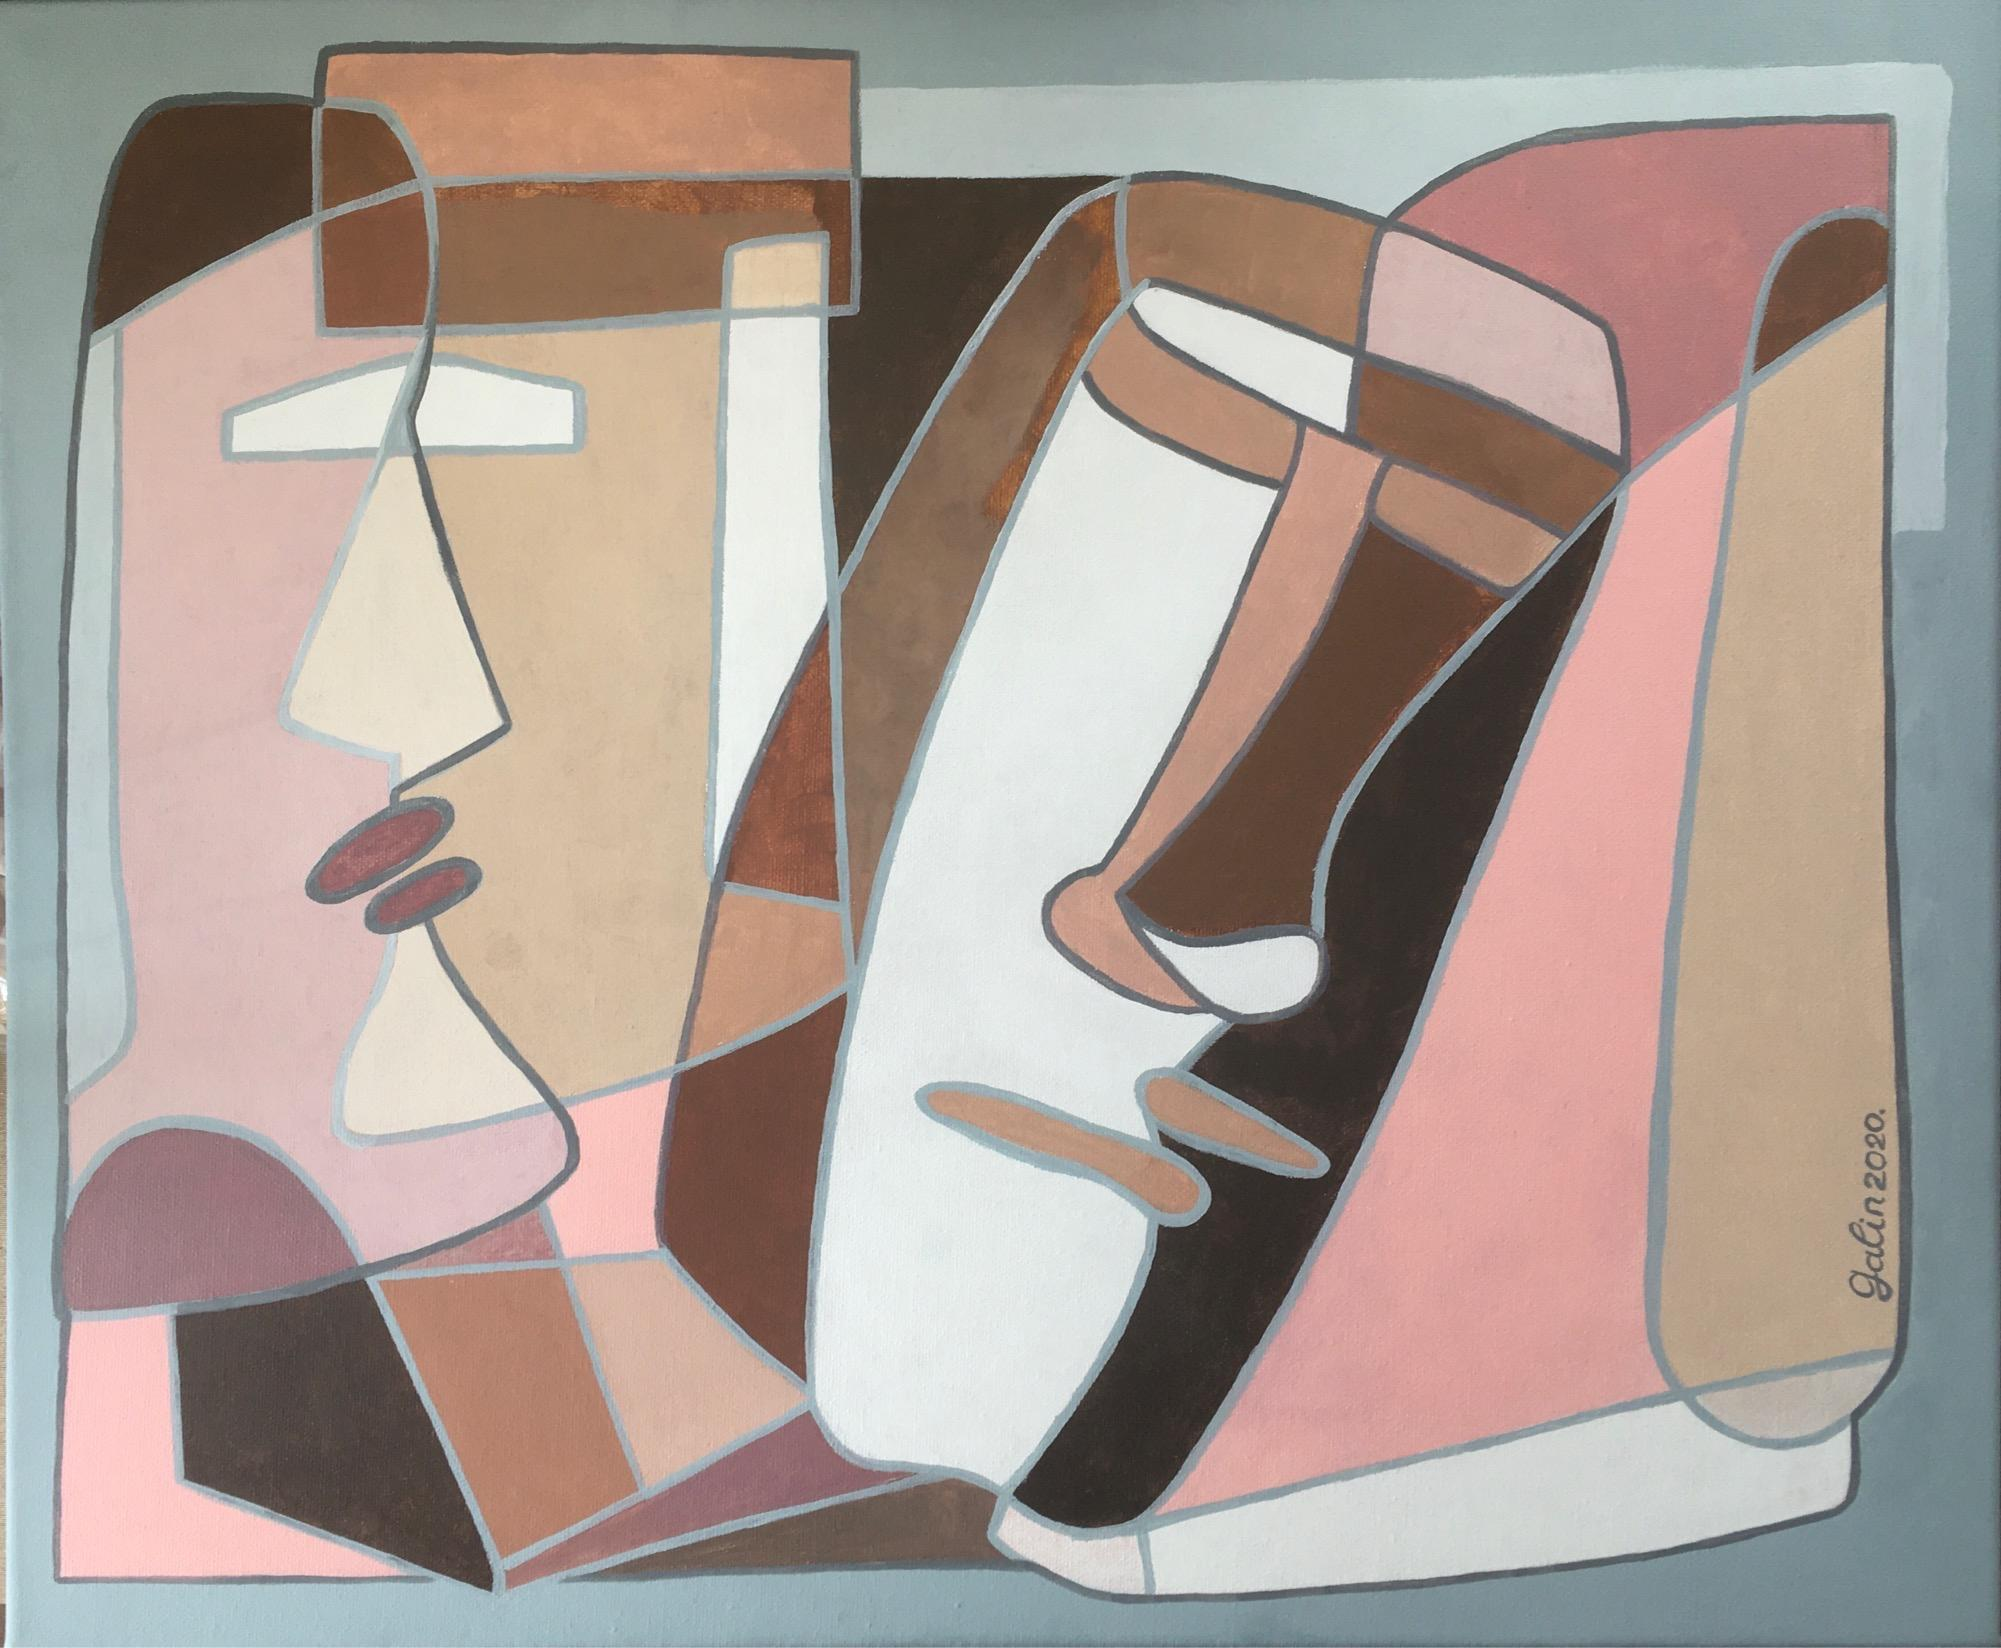 History secrets (idols from Easter Island)-abstract painting, made in pink, grey